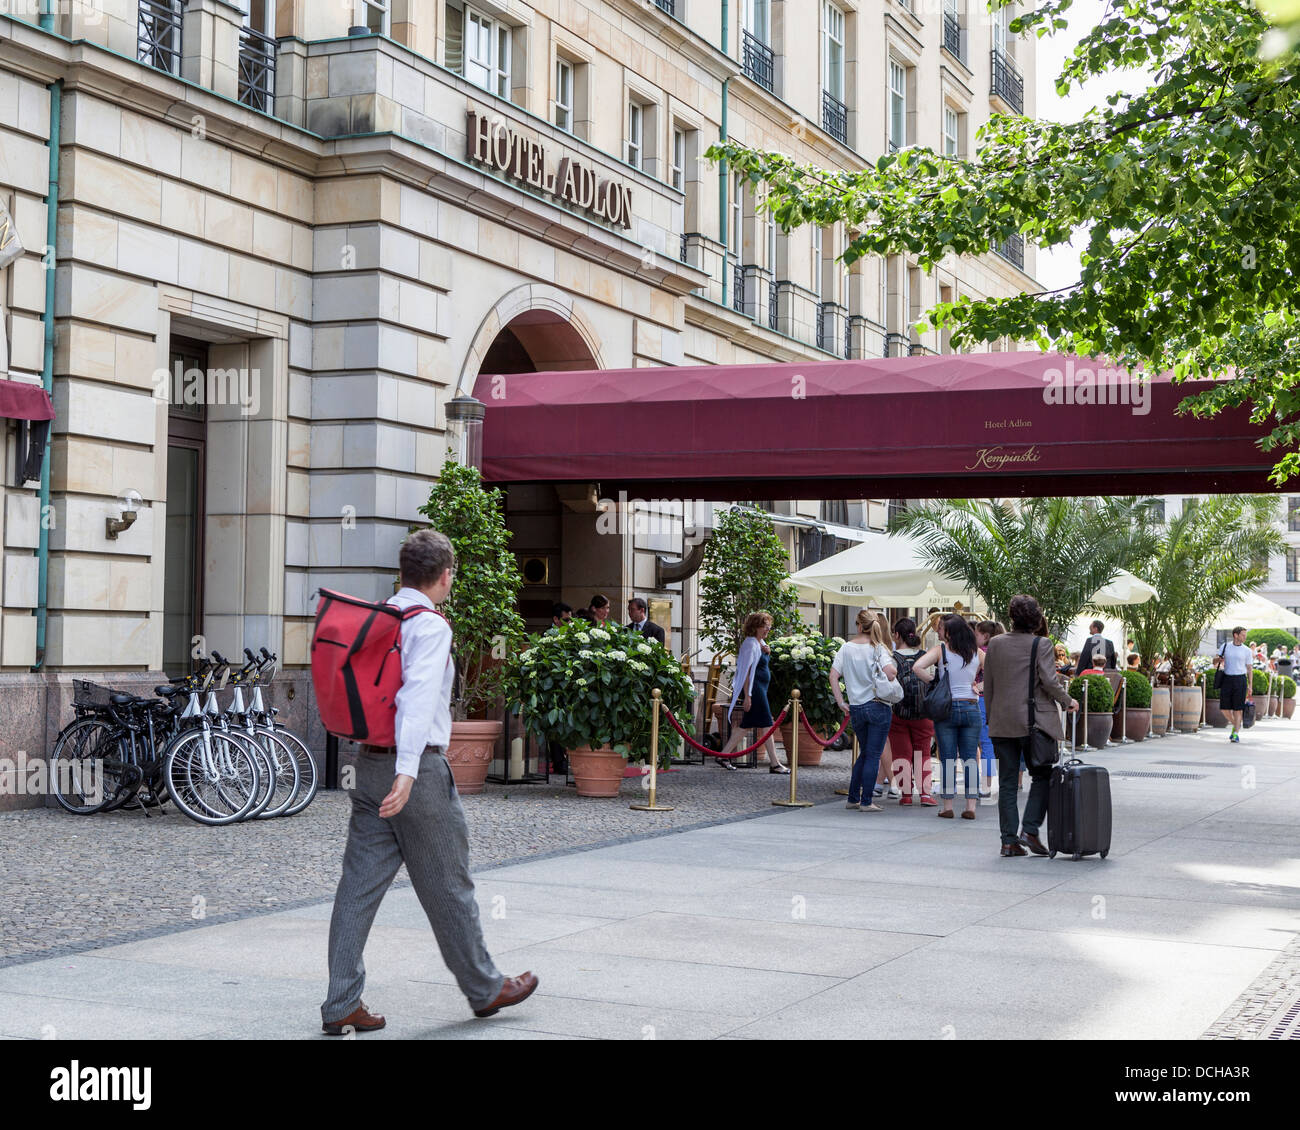 The front entrance and red awning of the luxury Hotel Adlon, Berlin - Stock Image